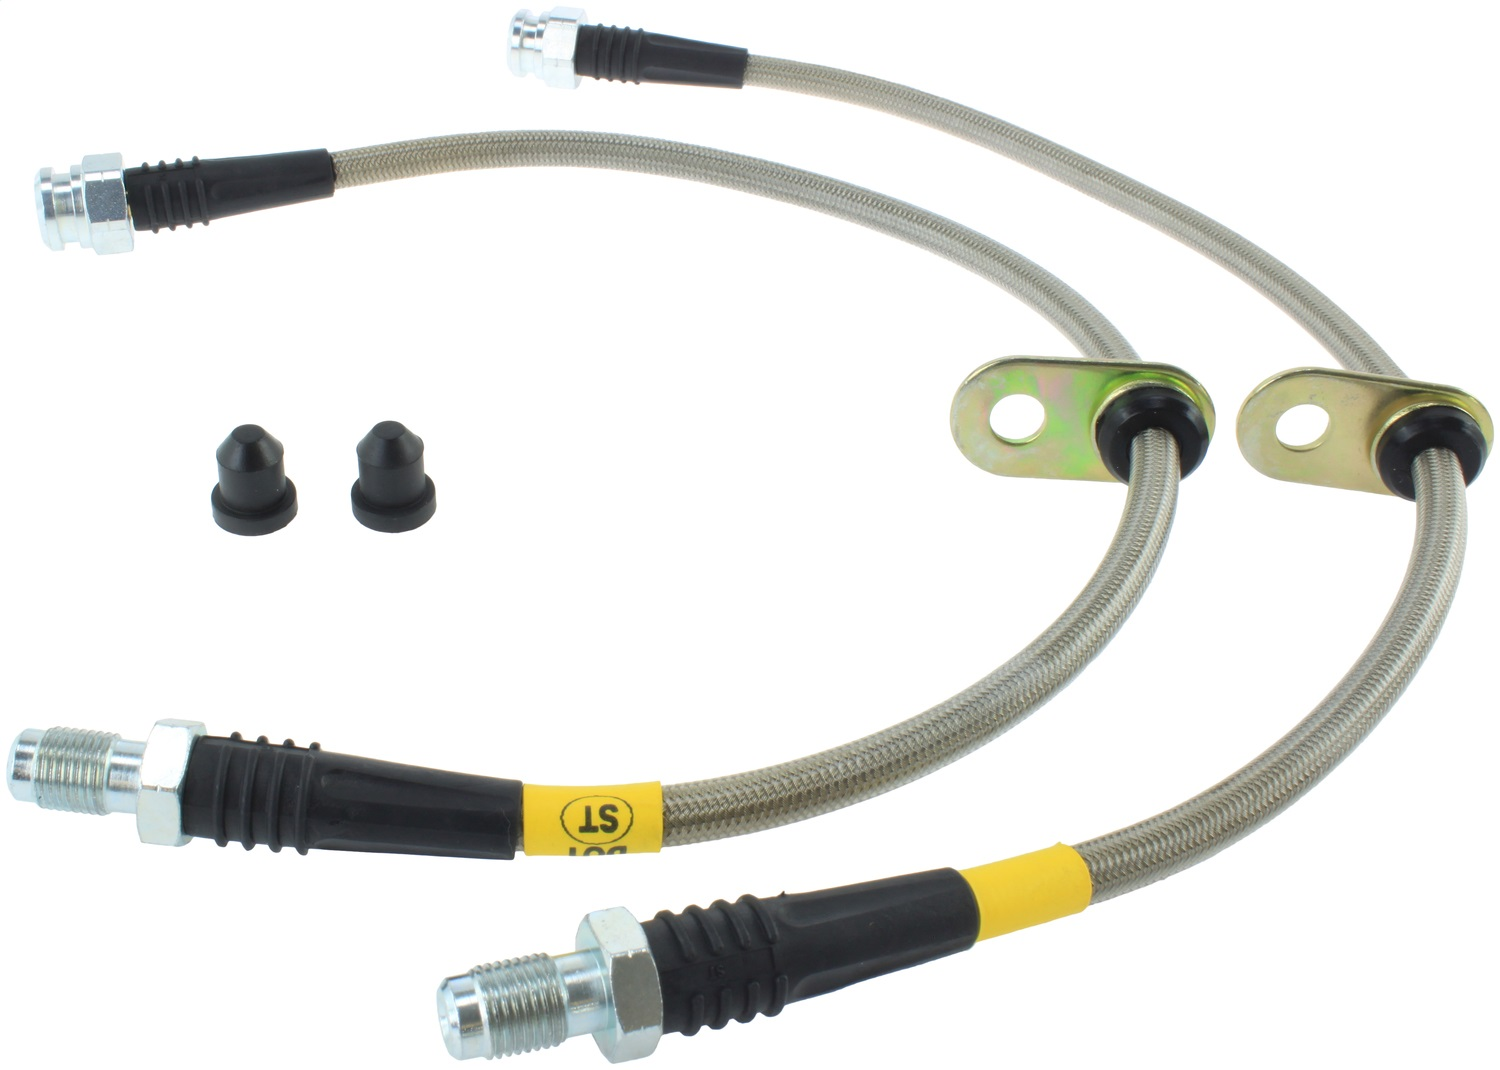 StopTech 950.61515 Stainless Steel Braided Brake Hose Kit Fits 14-19 Fiesta